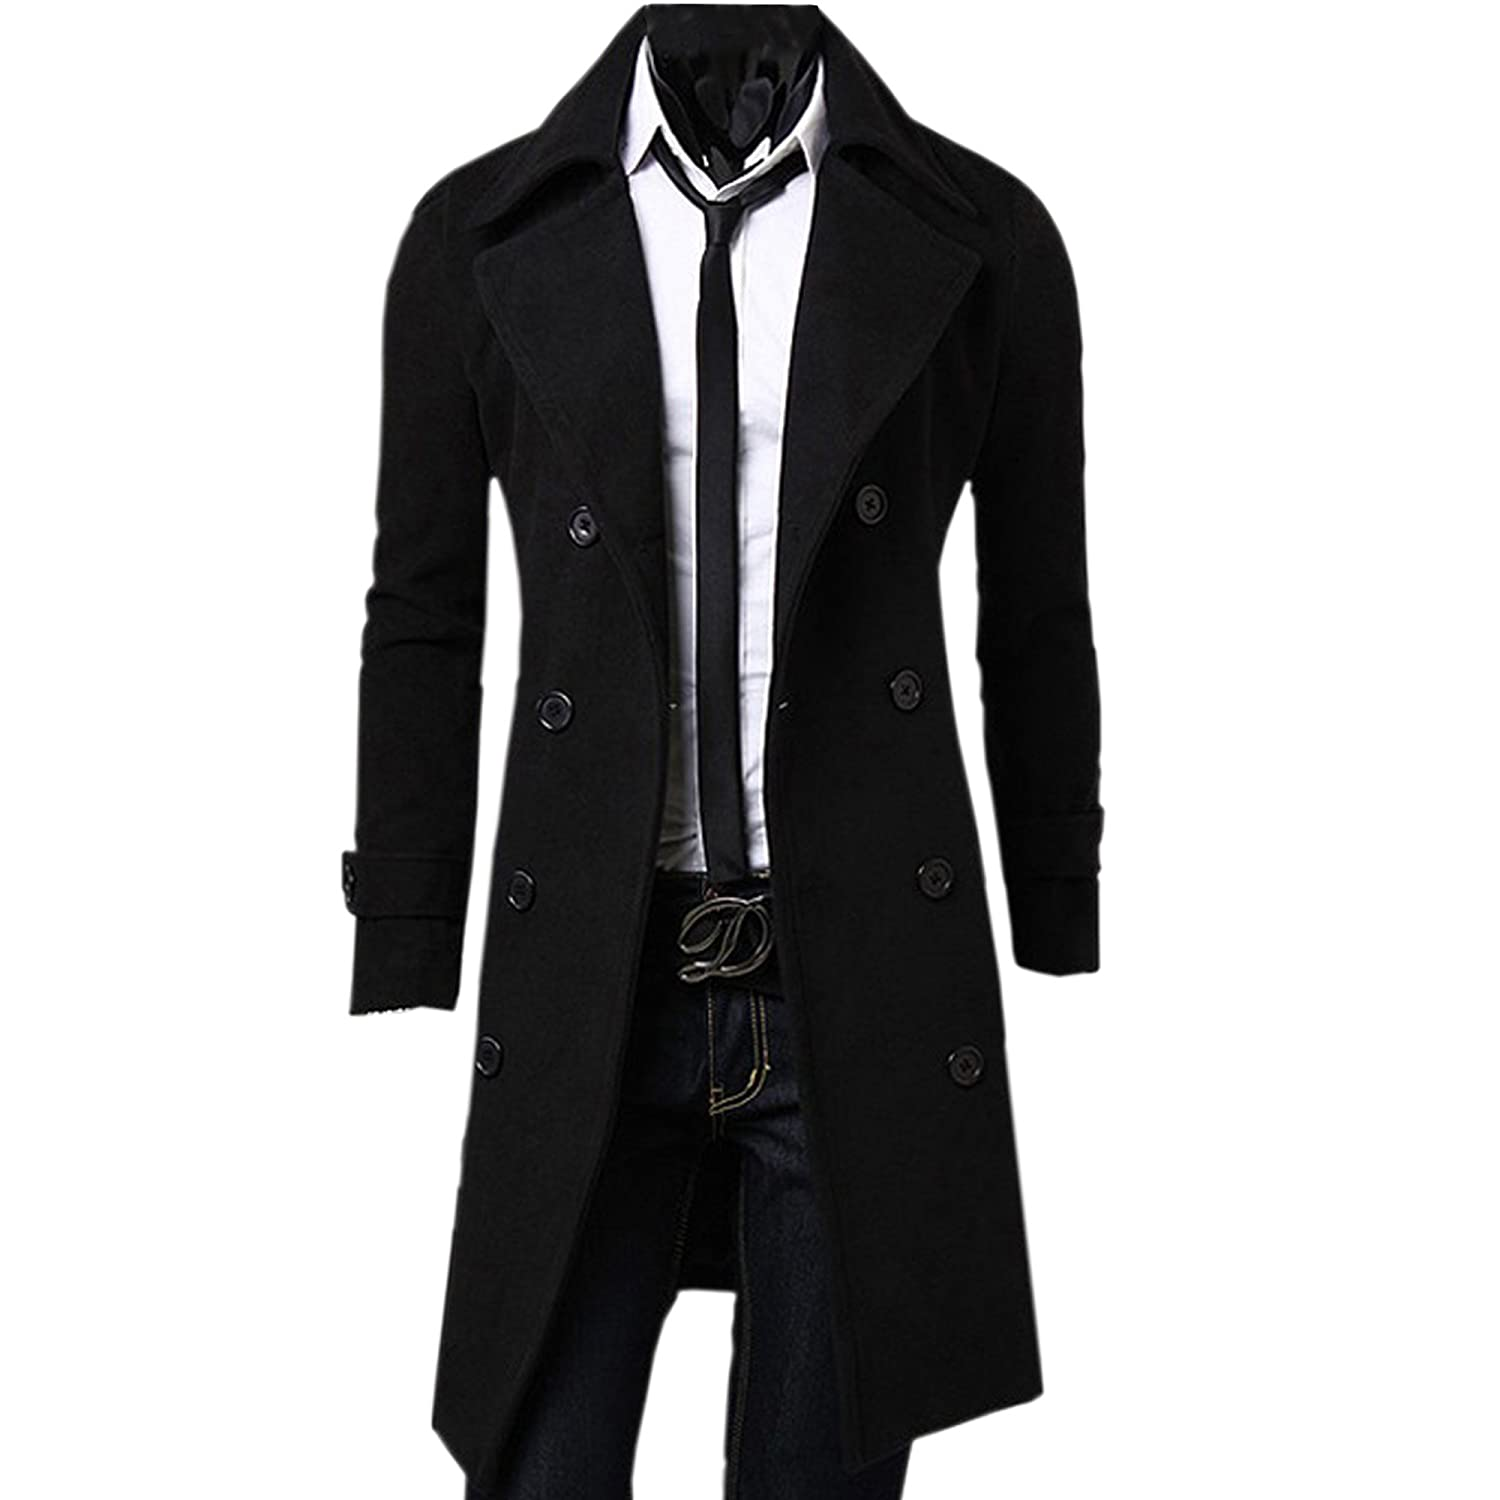 6 Men's Trench Coats To Consider This Autumn pics